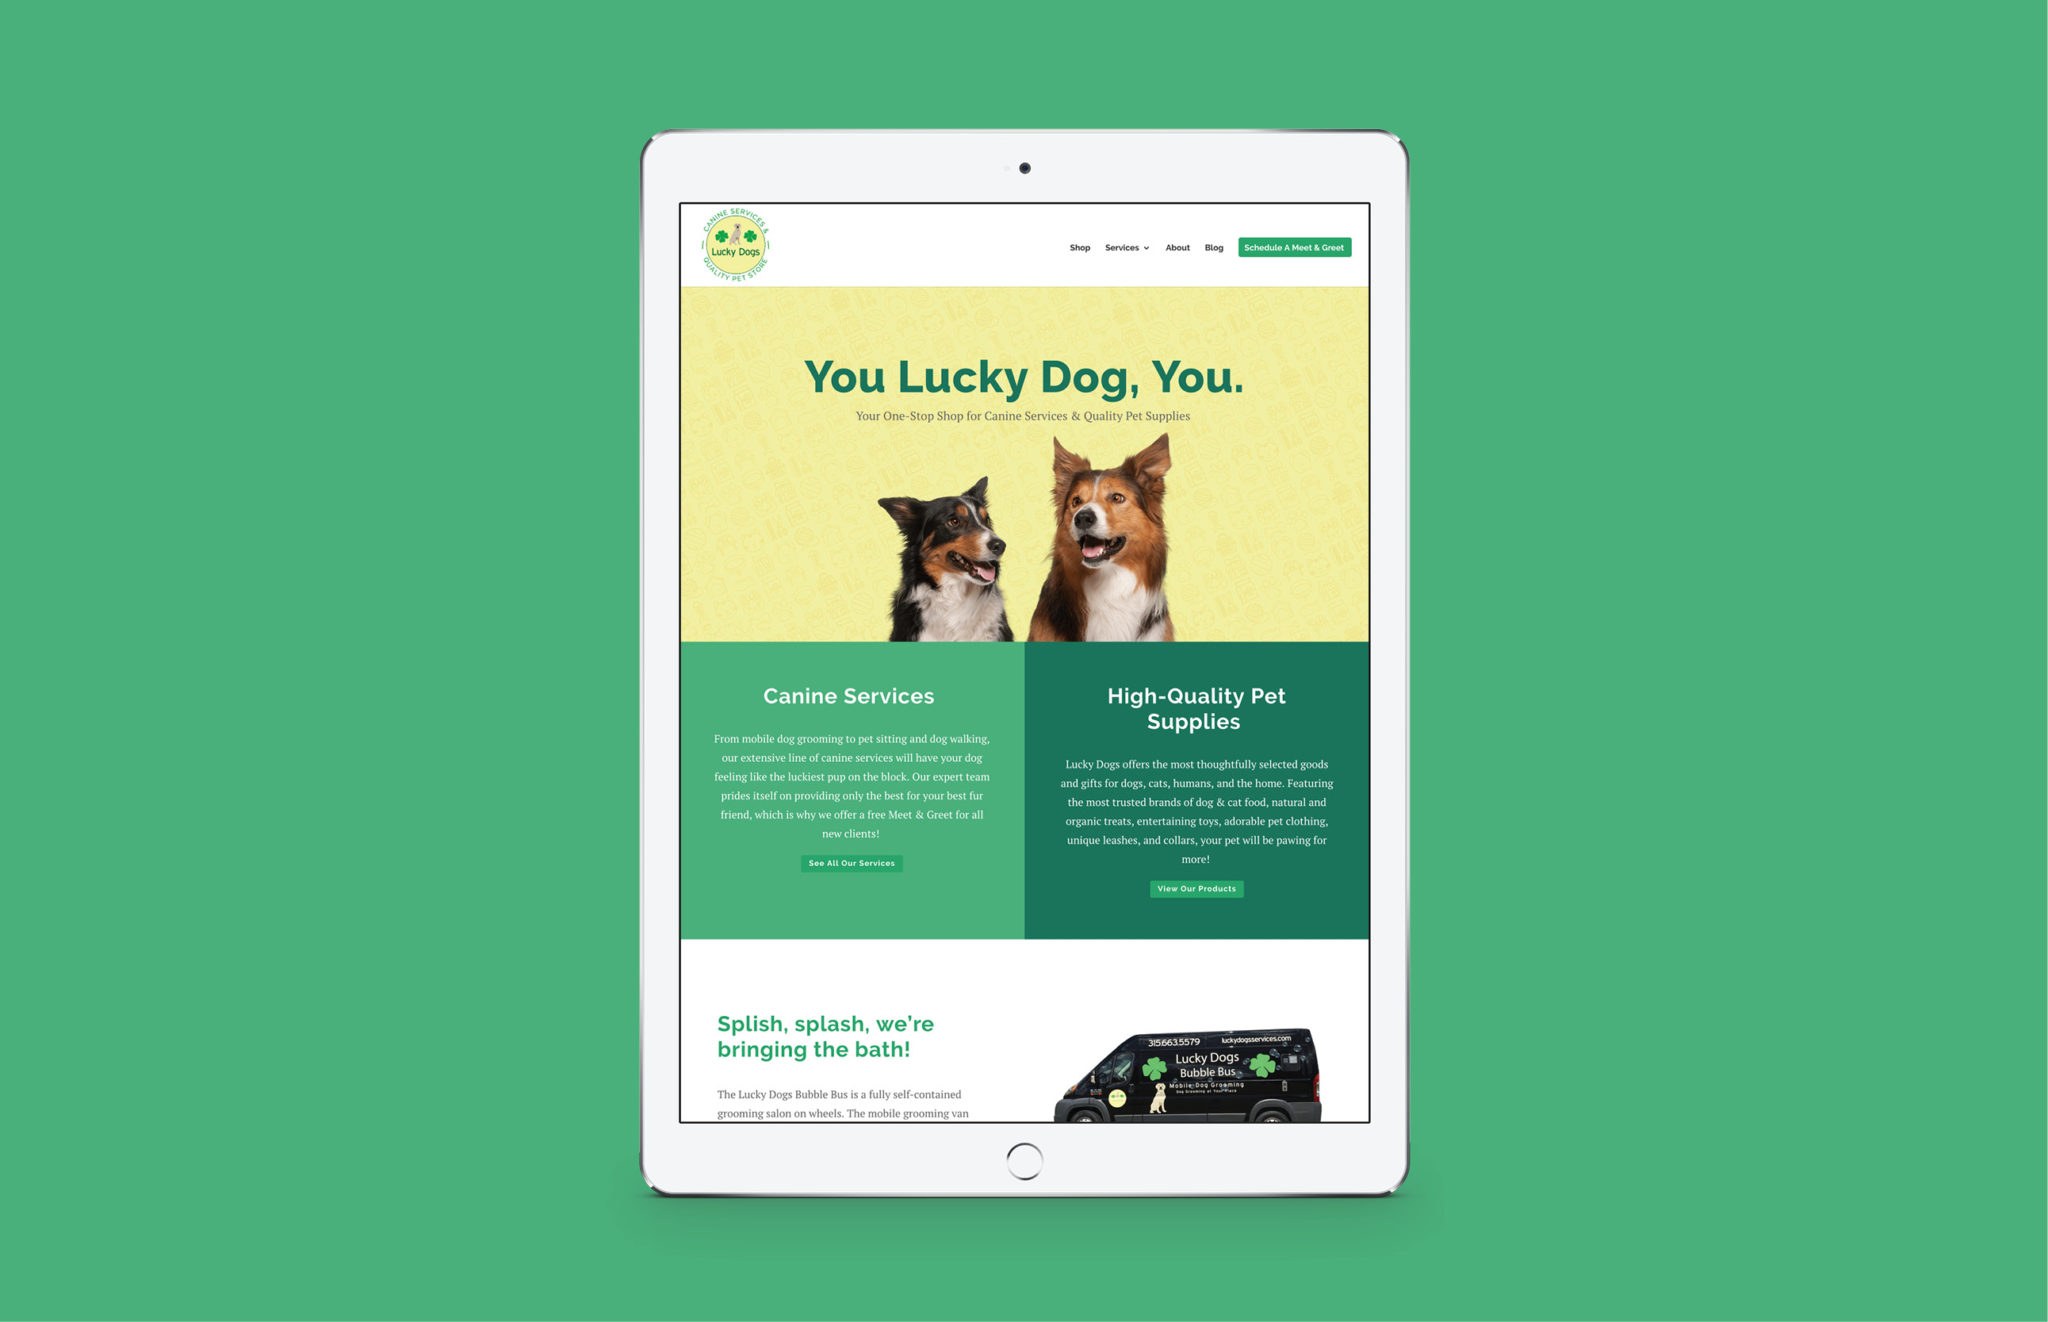 Lucky Dogs site displayed on tablet